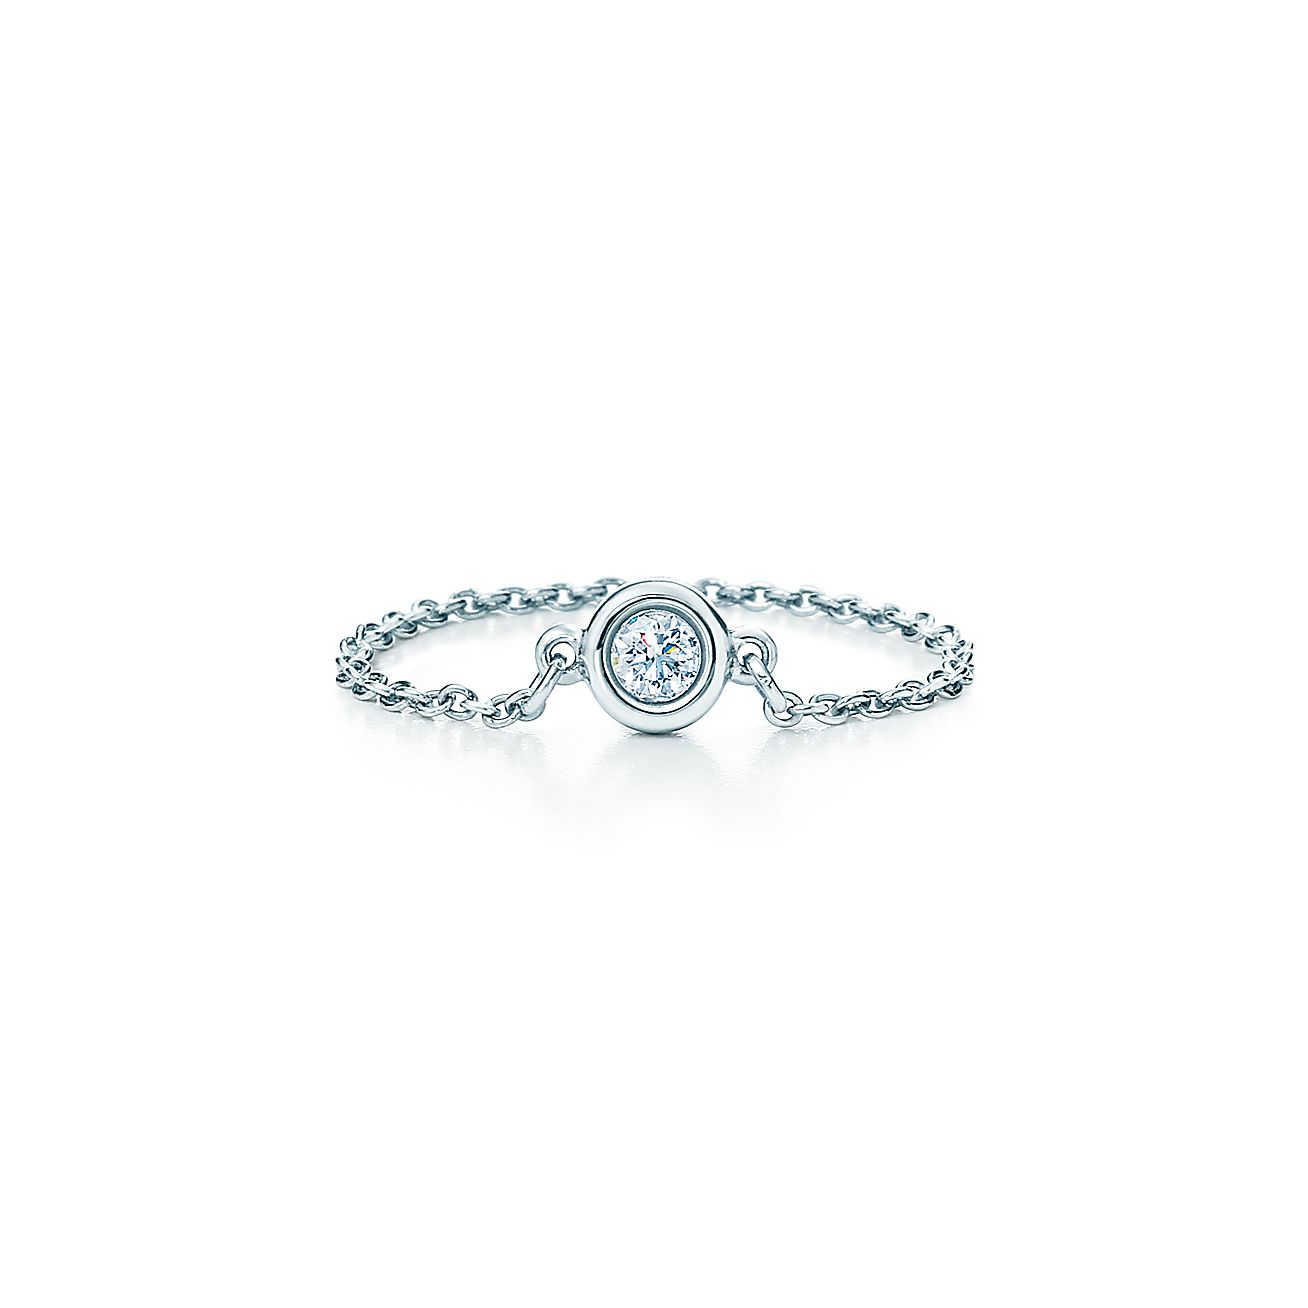 Elsa peretti diamonds by the yard ring in platinum for Diamonds by the yard ring